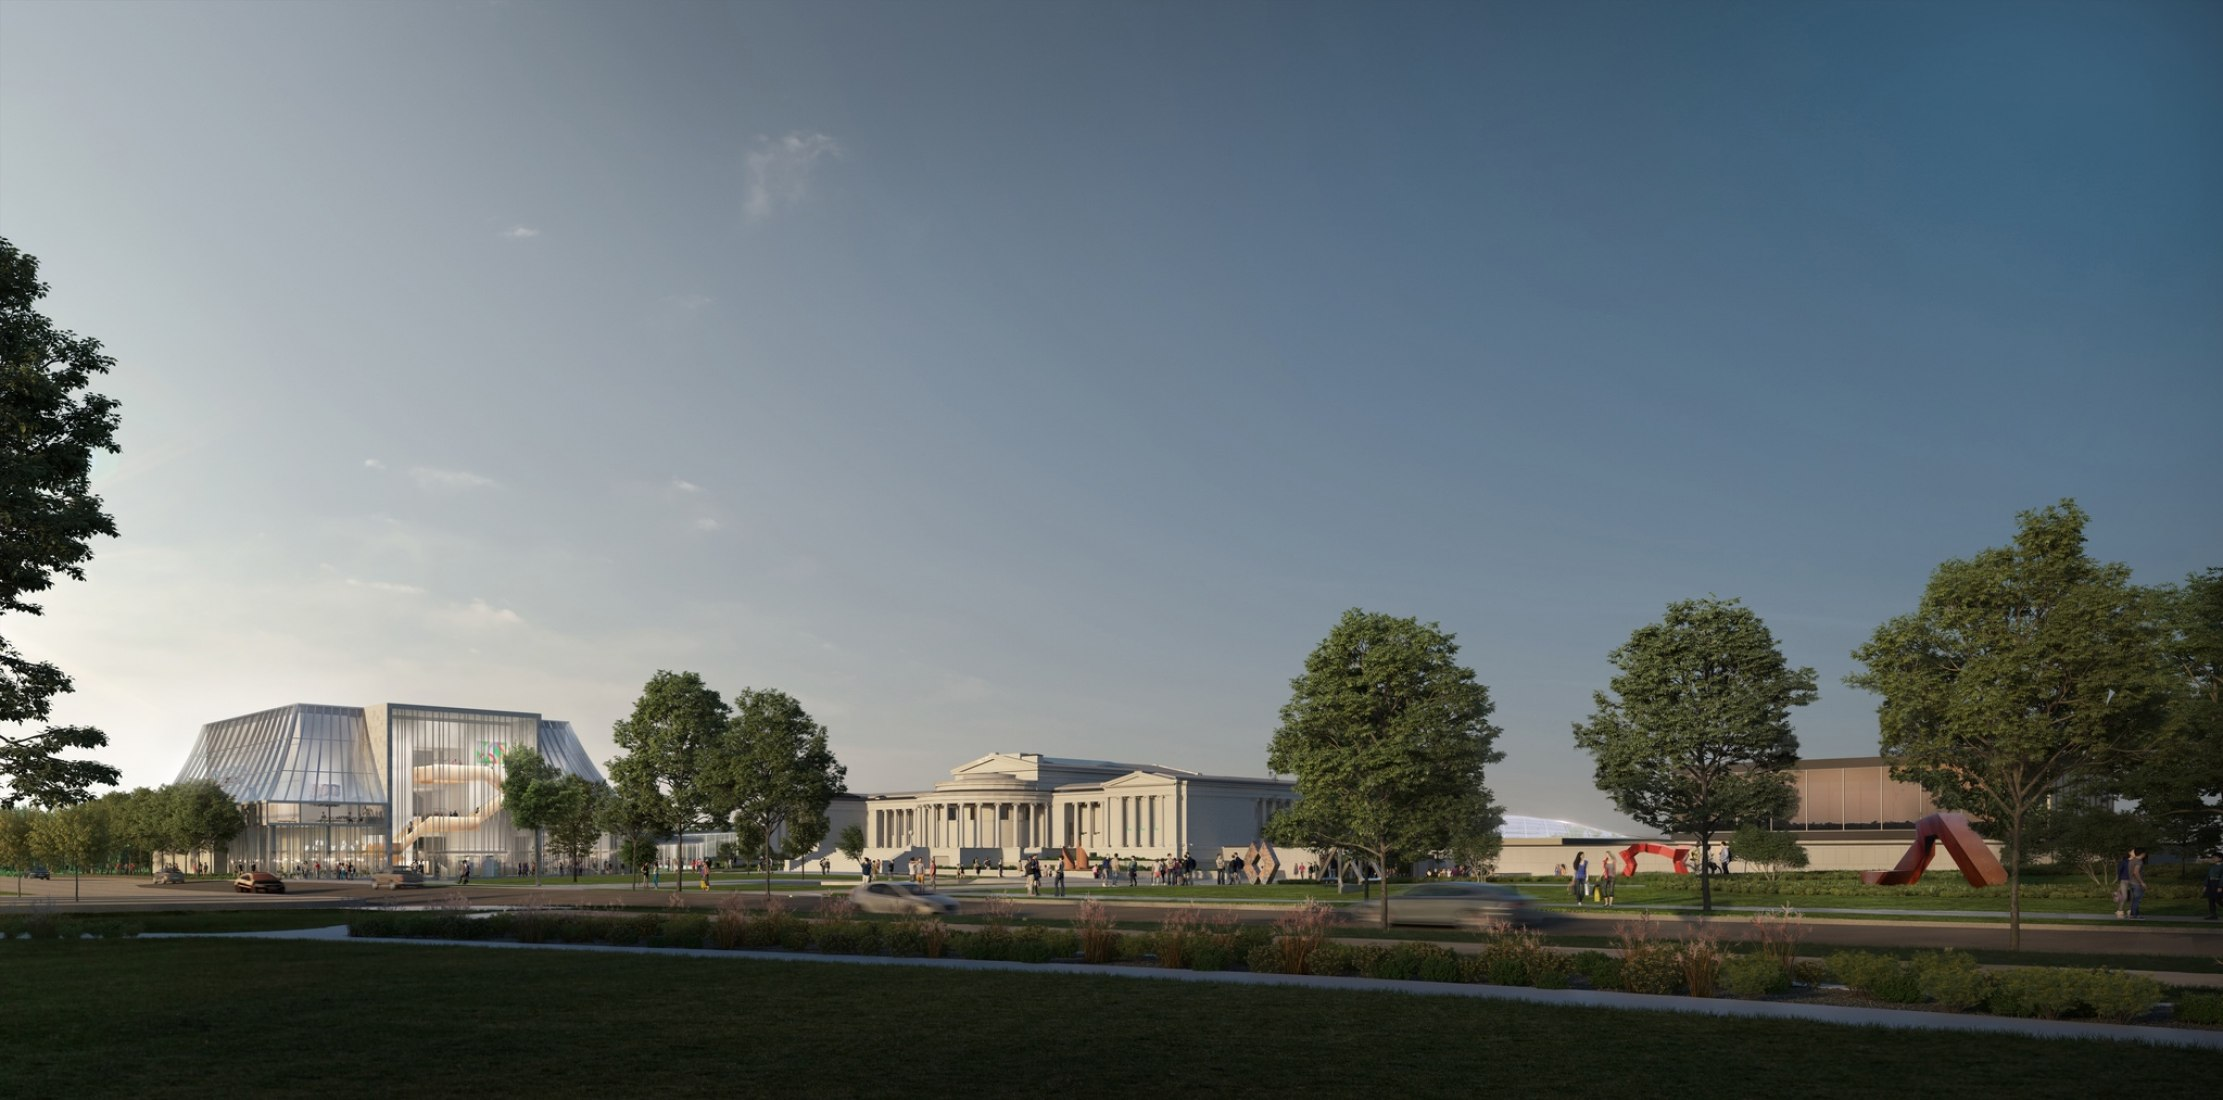 Rendering. Buffalo Albright-Knox-Gundlach Art Museum by OMA. Image by Brick Visuals, courtesy of OMA